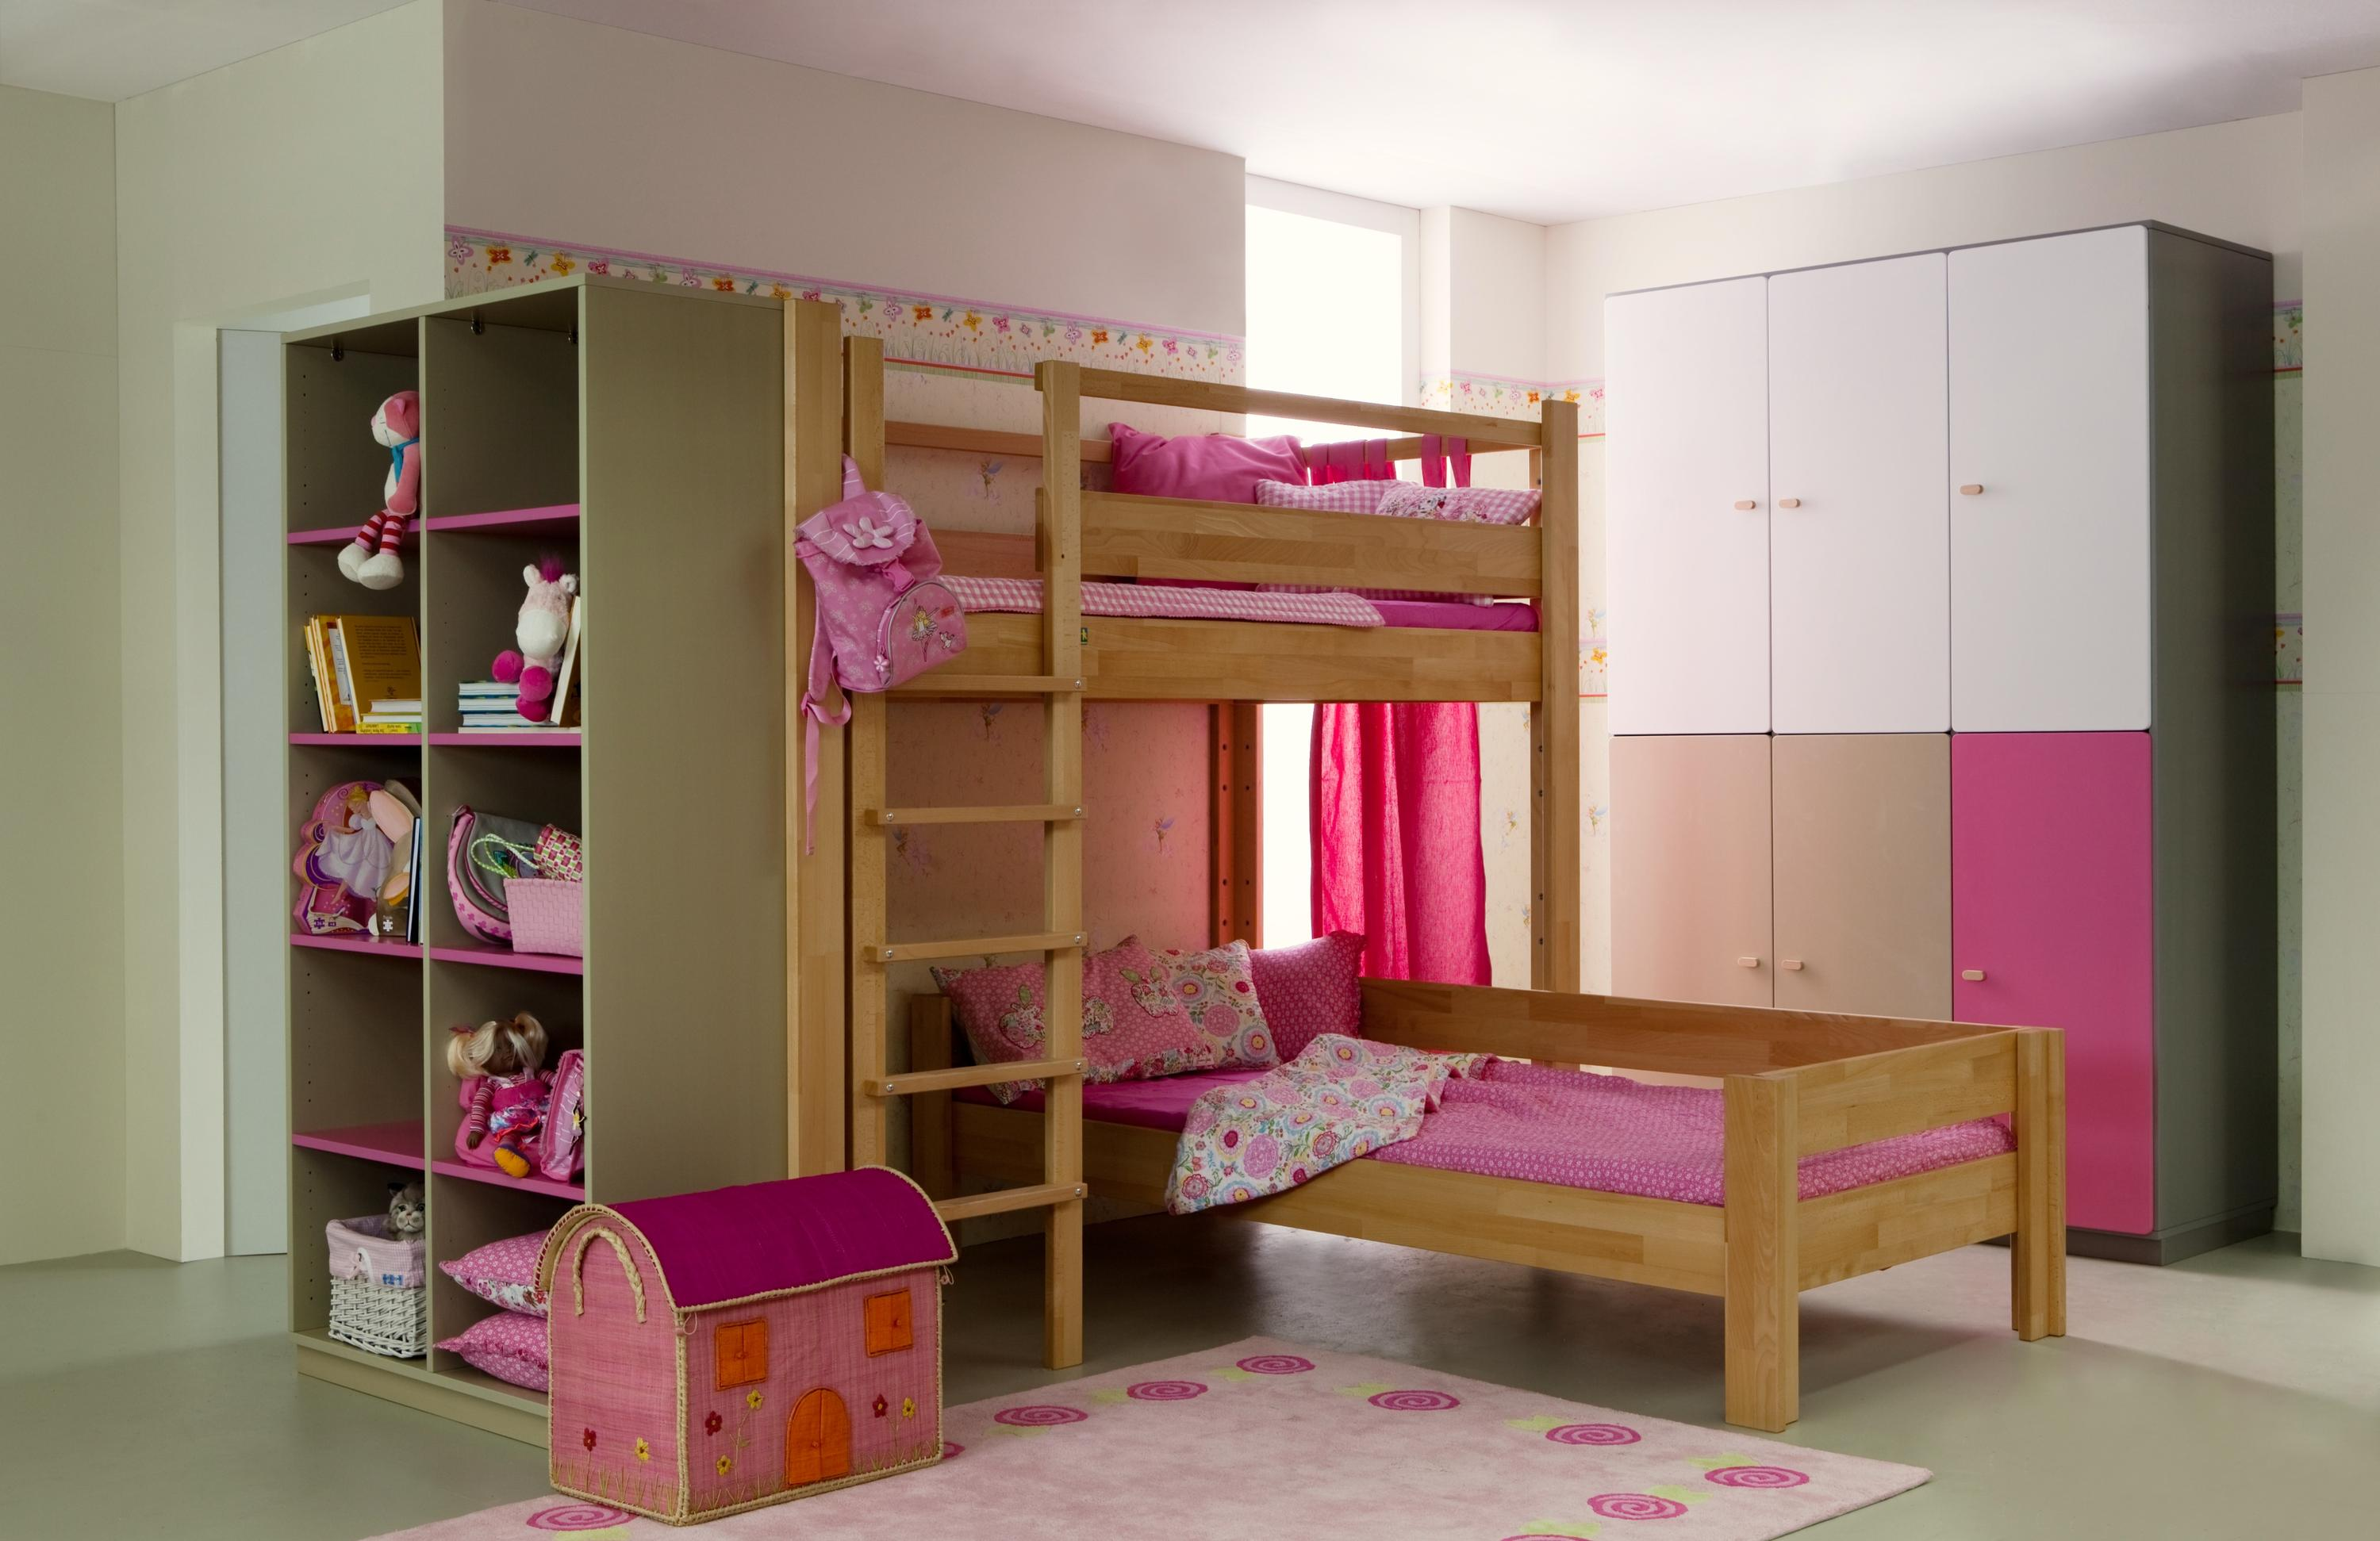 lit baldachin dbb 100b lits enfants de de breuyn architonic. Black Bedroom Furniture Sets. Home Design Ideas